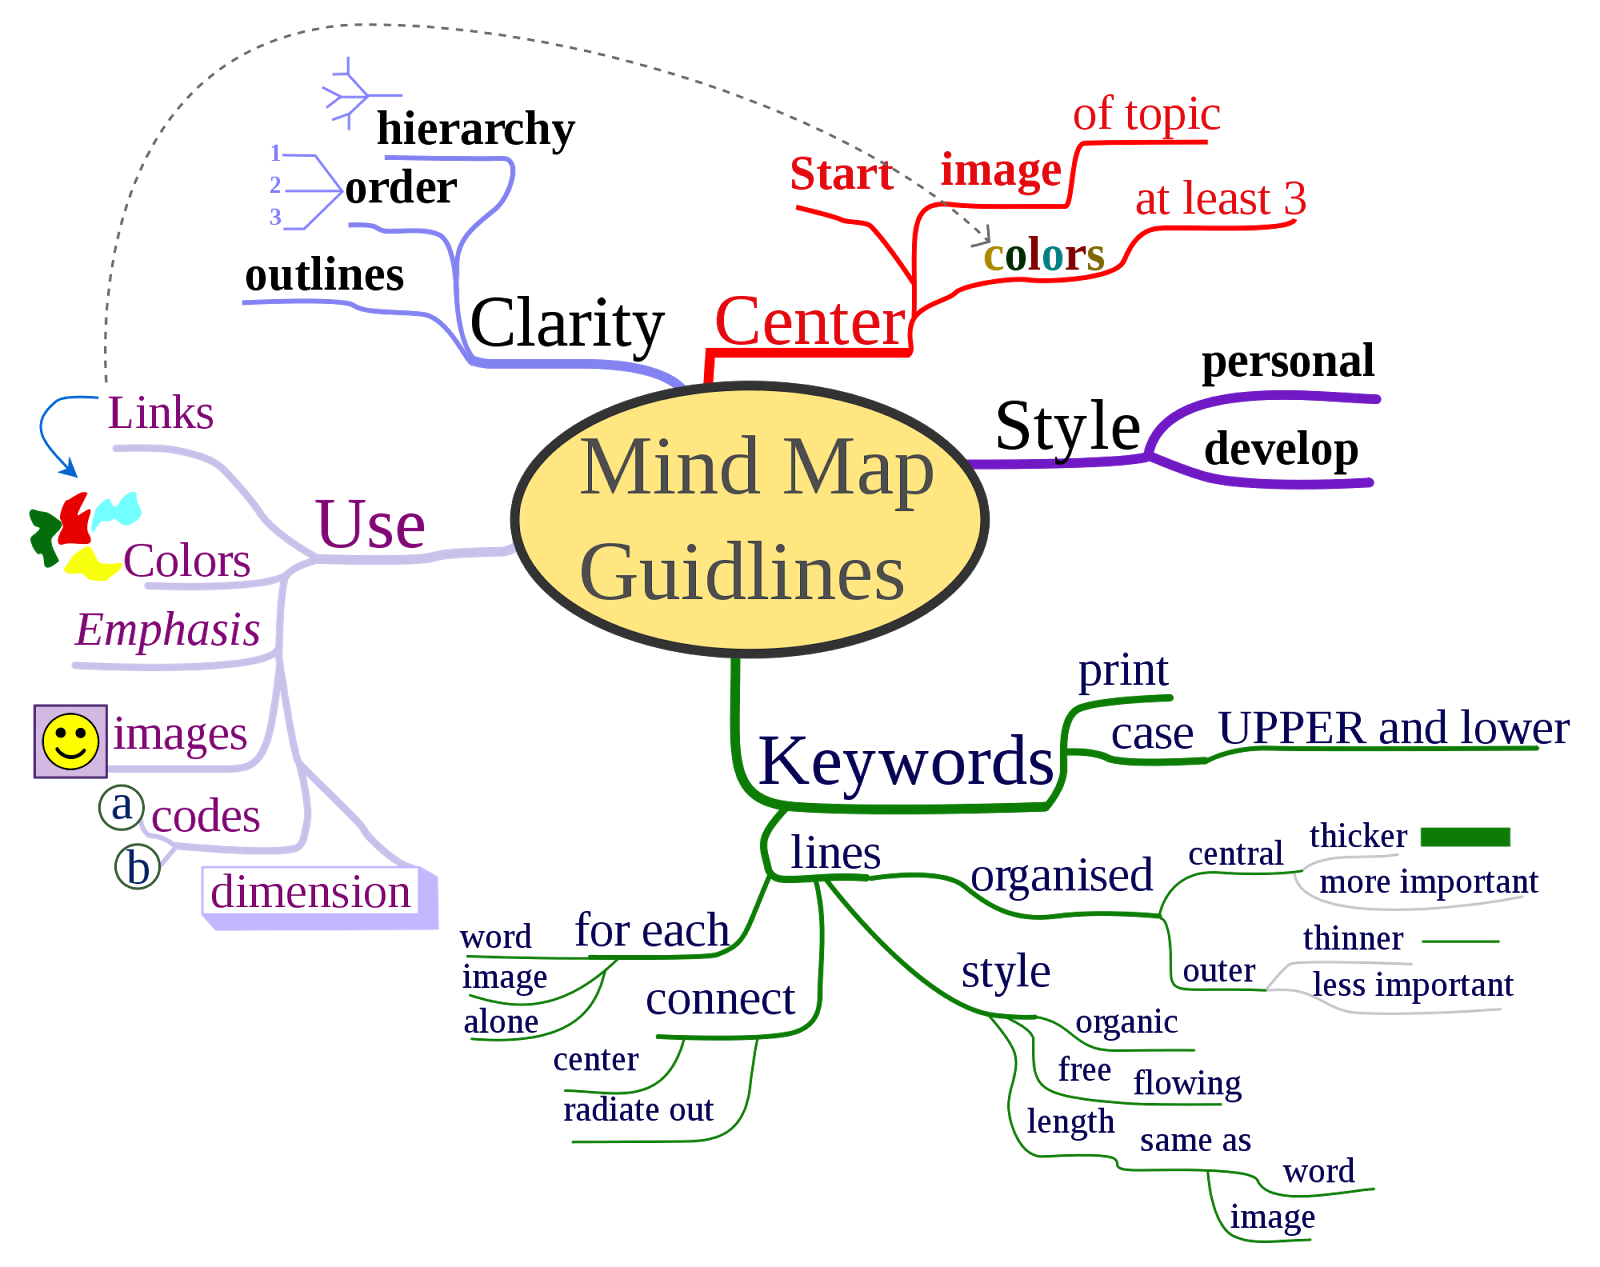 In Ainstorming As Shown In The Graphic Diagram The Central Core Consists Of The Topic For Which We Are Going Toinstorm